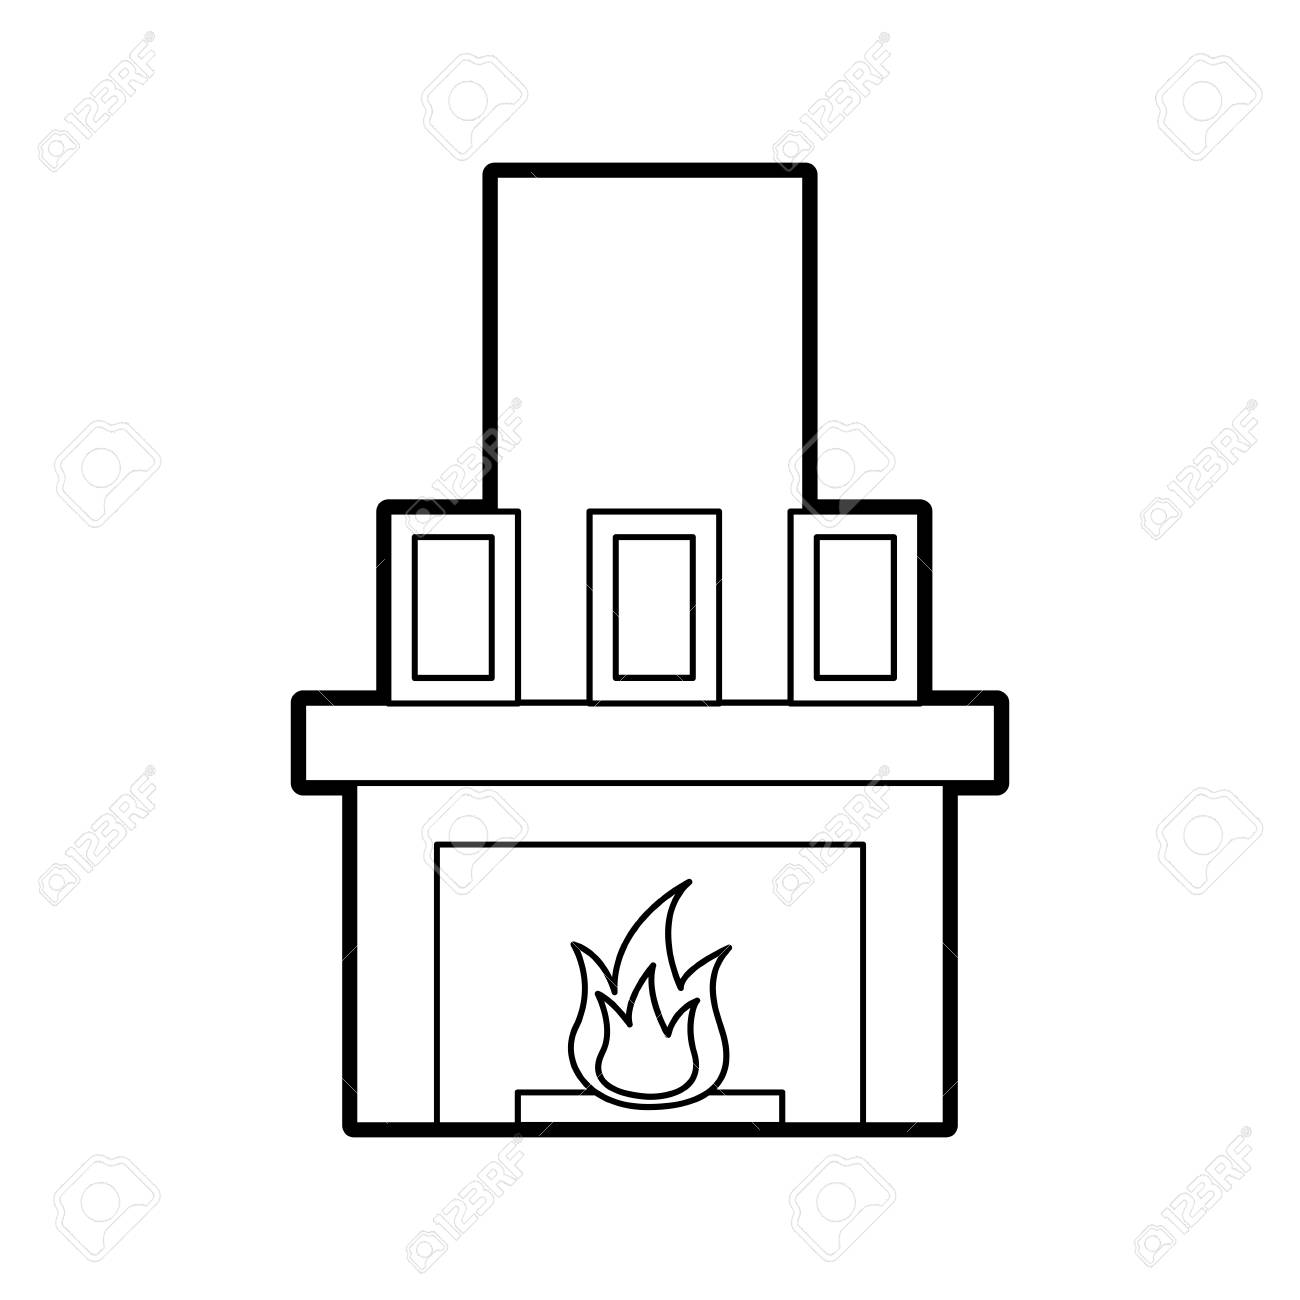 hight resolution of fireplace chimney flame indoor decoration vector illustration stock vector 85783259